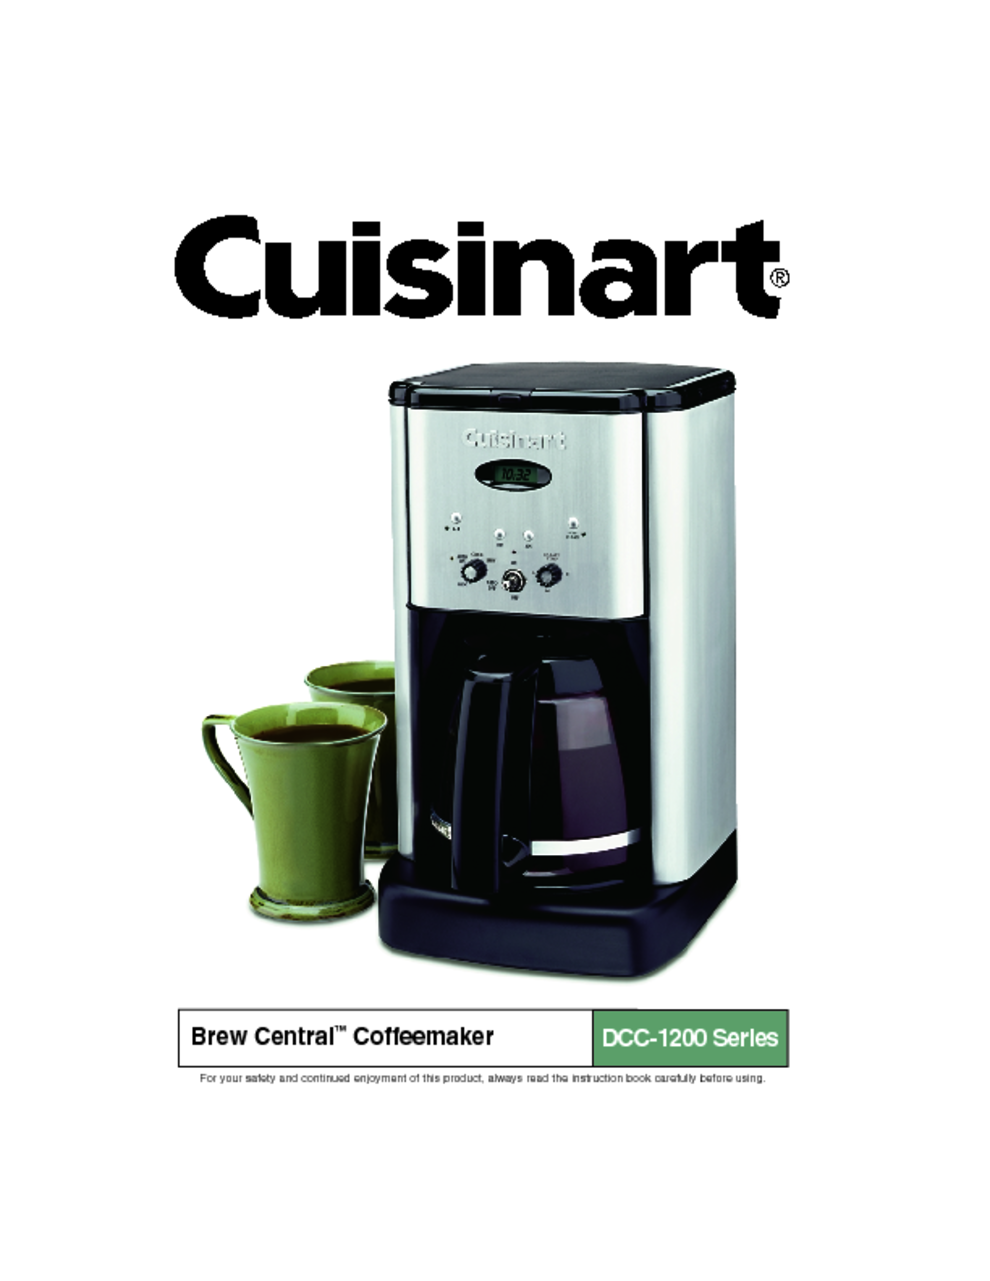 Cuisinart Coffee Maker Hot Water Manual : Self Cleaning Cuisinart Coffee Maker Instructions - irbrida